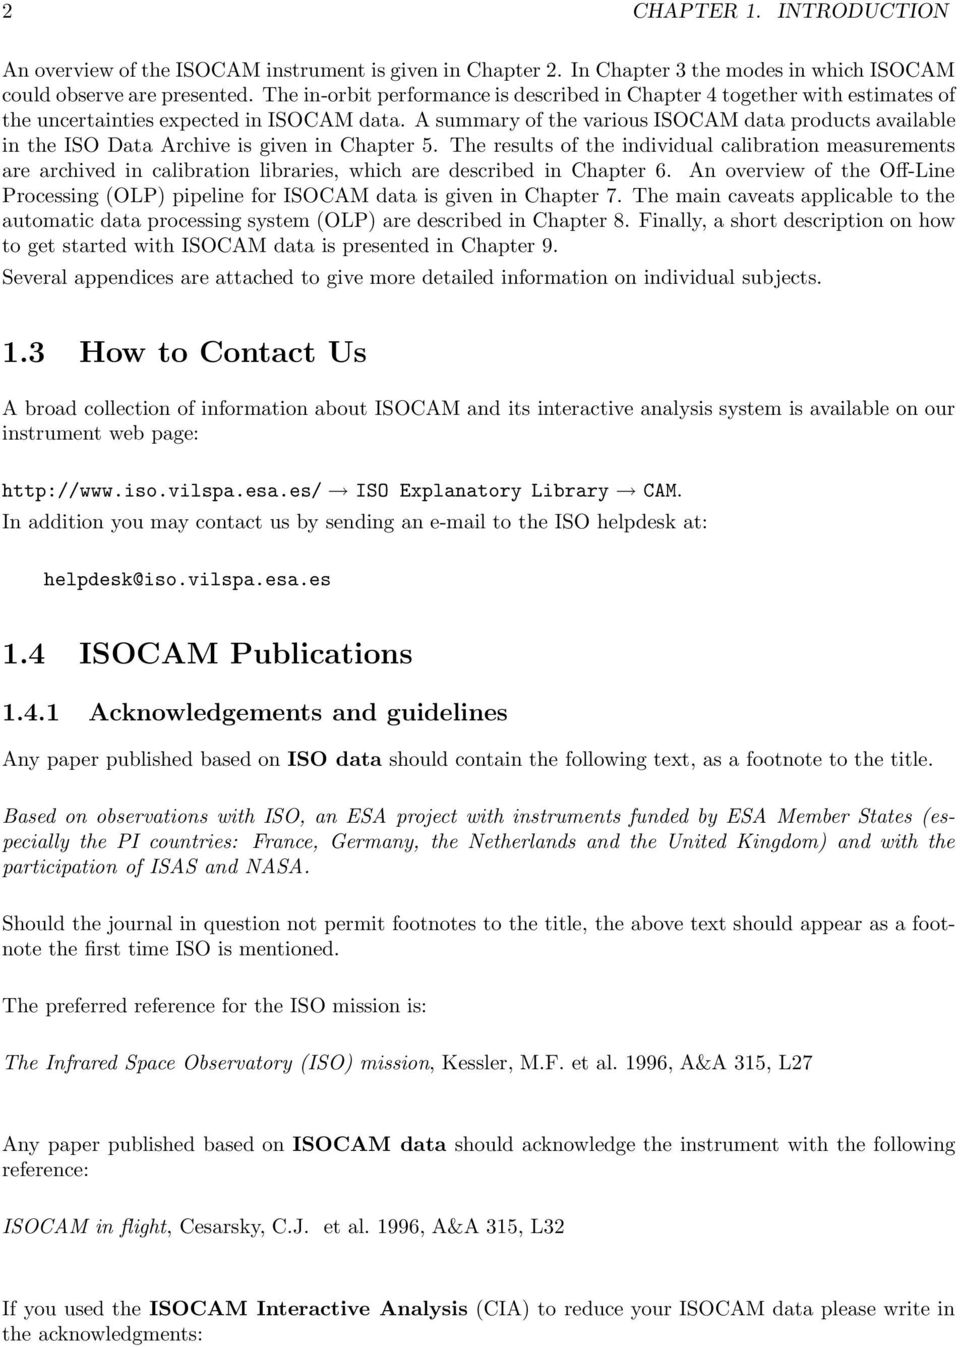 A summary of the various ISOCAM data products available in the ISO Data Archive is given in Chapter 5.